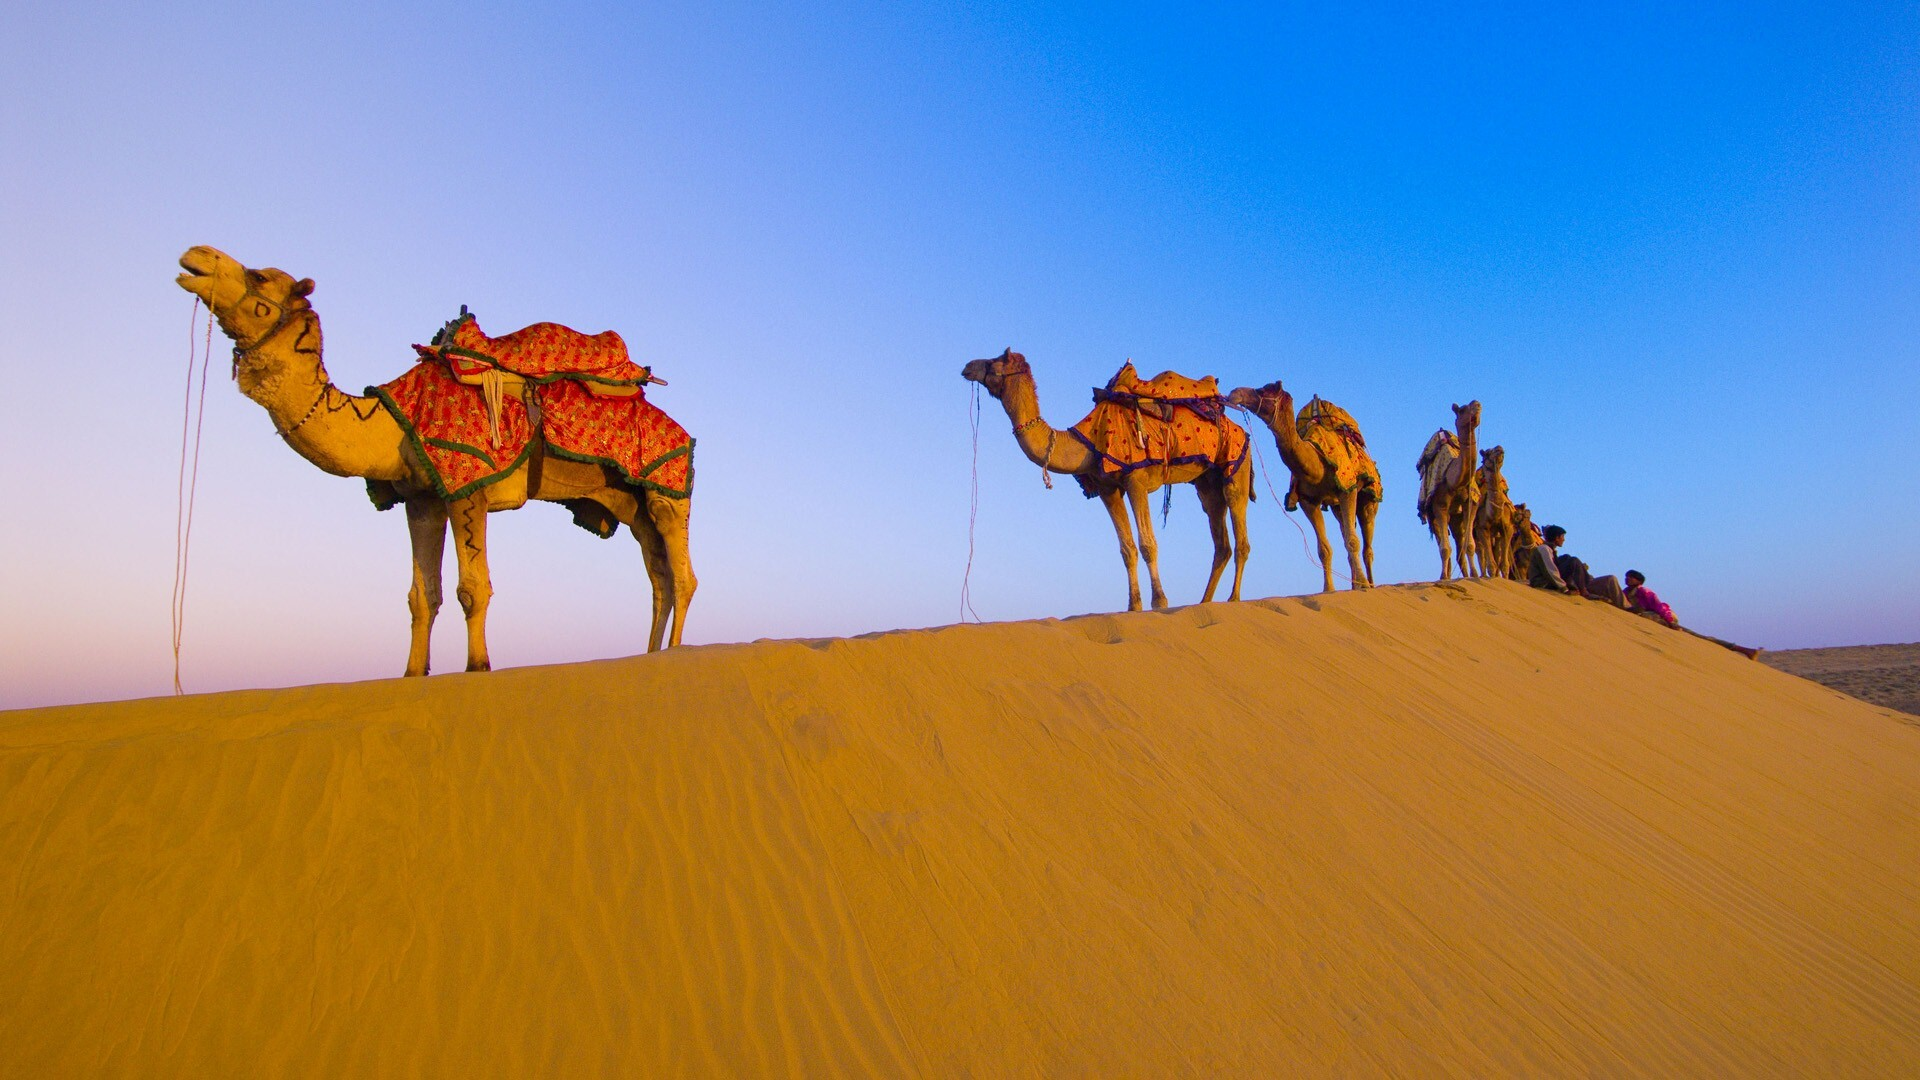 Rajasthani Camel In Desert HD Wallpaper